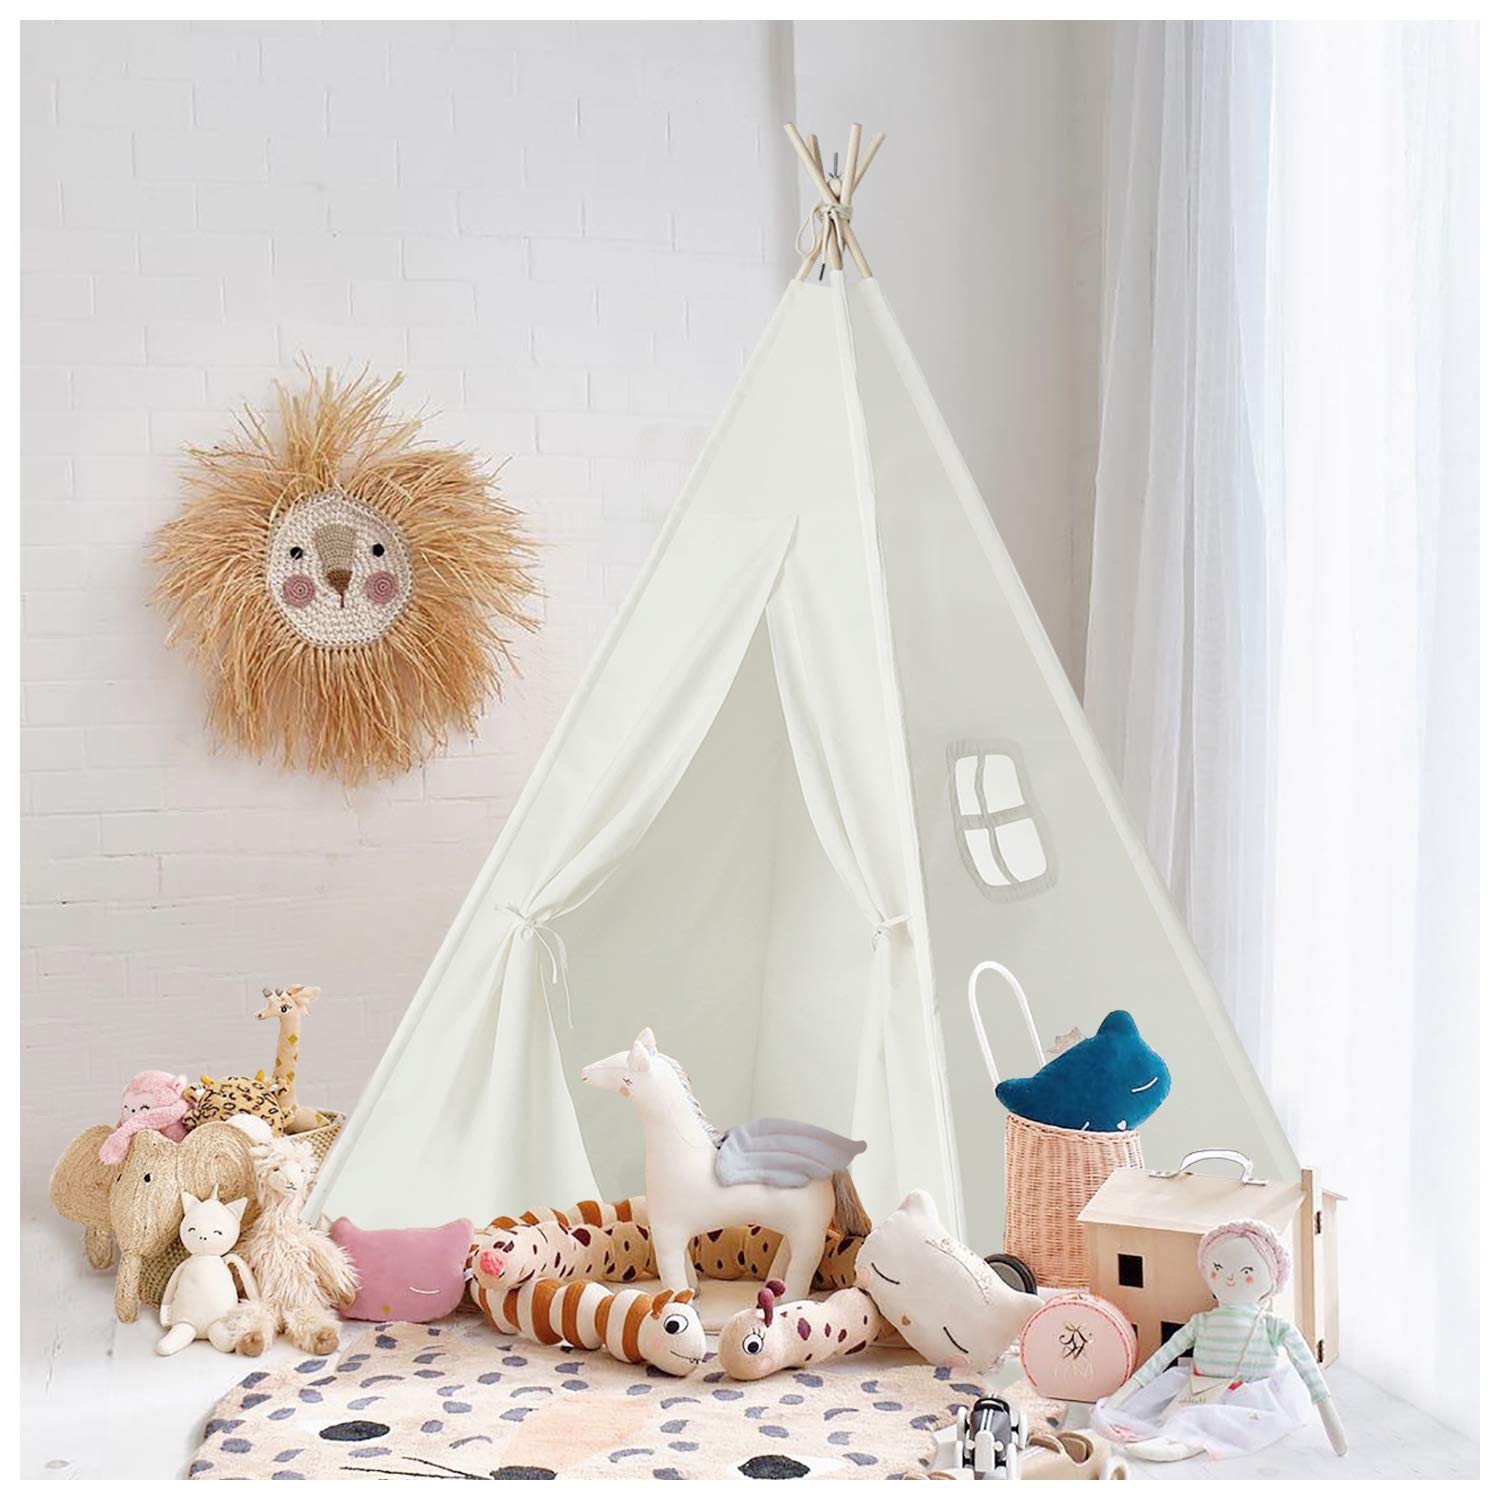 UKadou Kids-Teepee-Tent-for-Kids , Teepee Tent for Boys and Girls, Canvas Fabric Tent with Stabilizer & Pine Wood Poles for Indoor & Outdoor use (White)